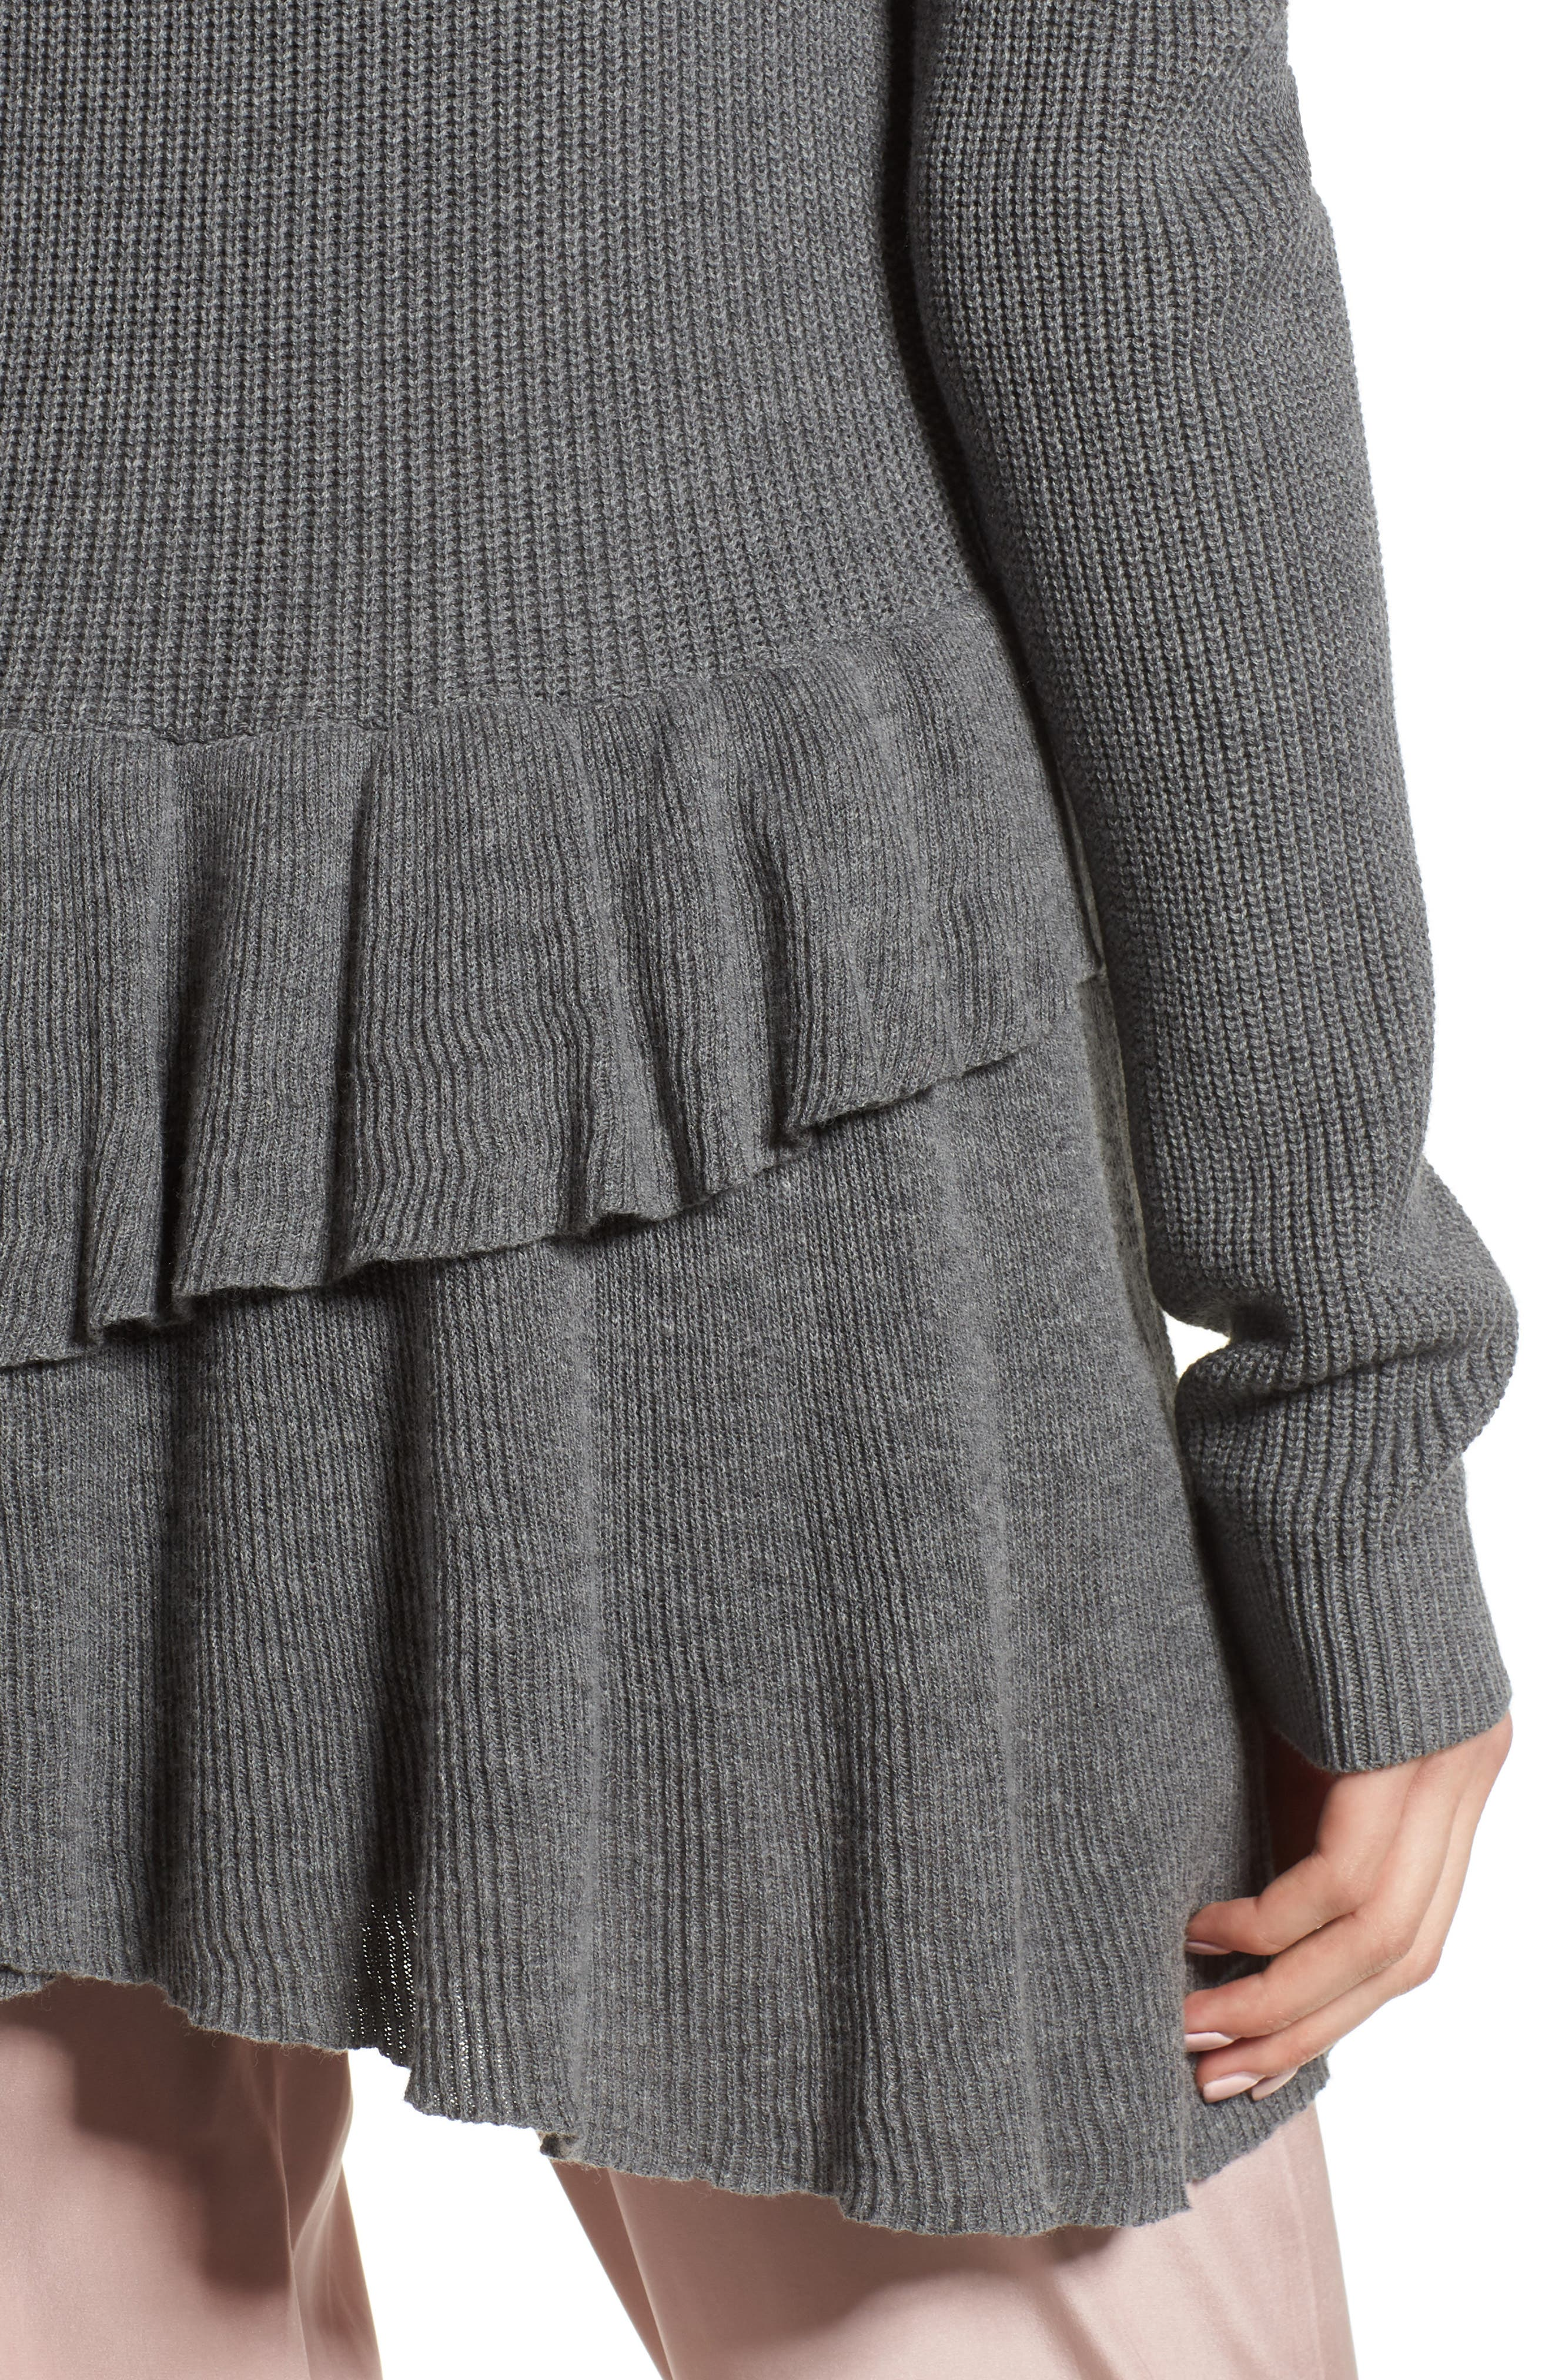 Ruffle Cardigan,                             Alternate thumbnail 4, color,                             Grey Dark Heather